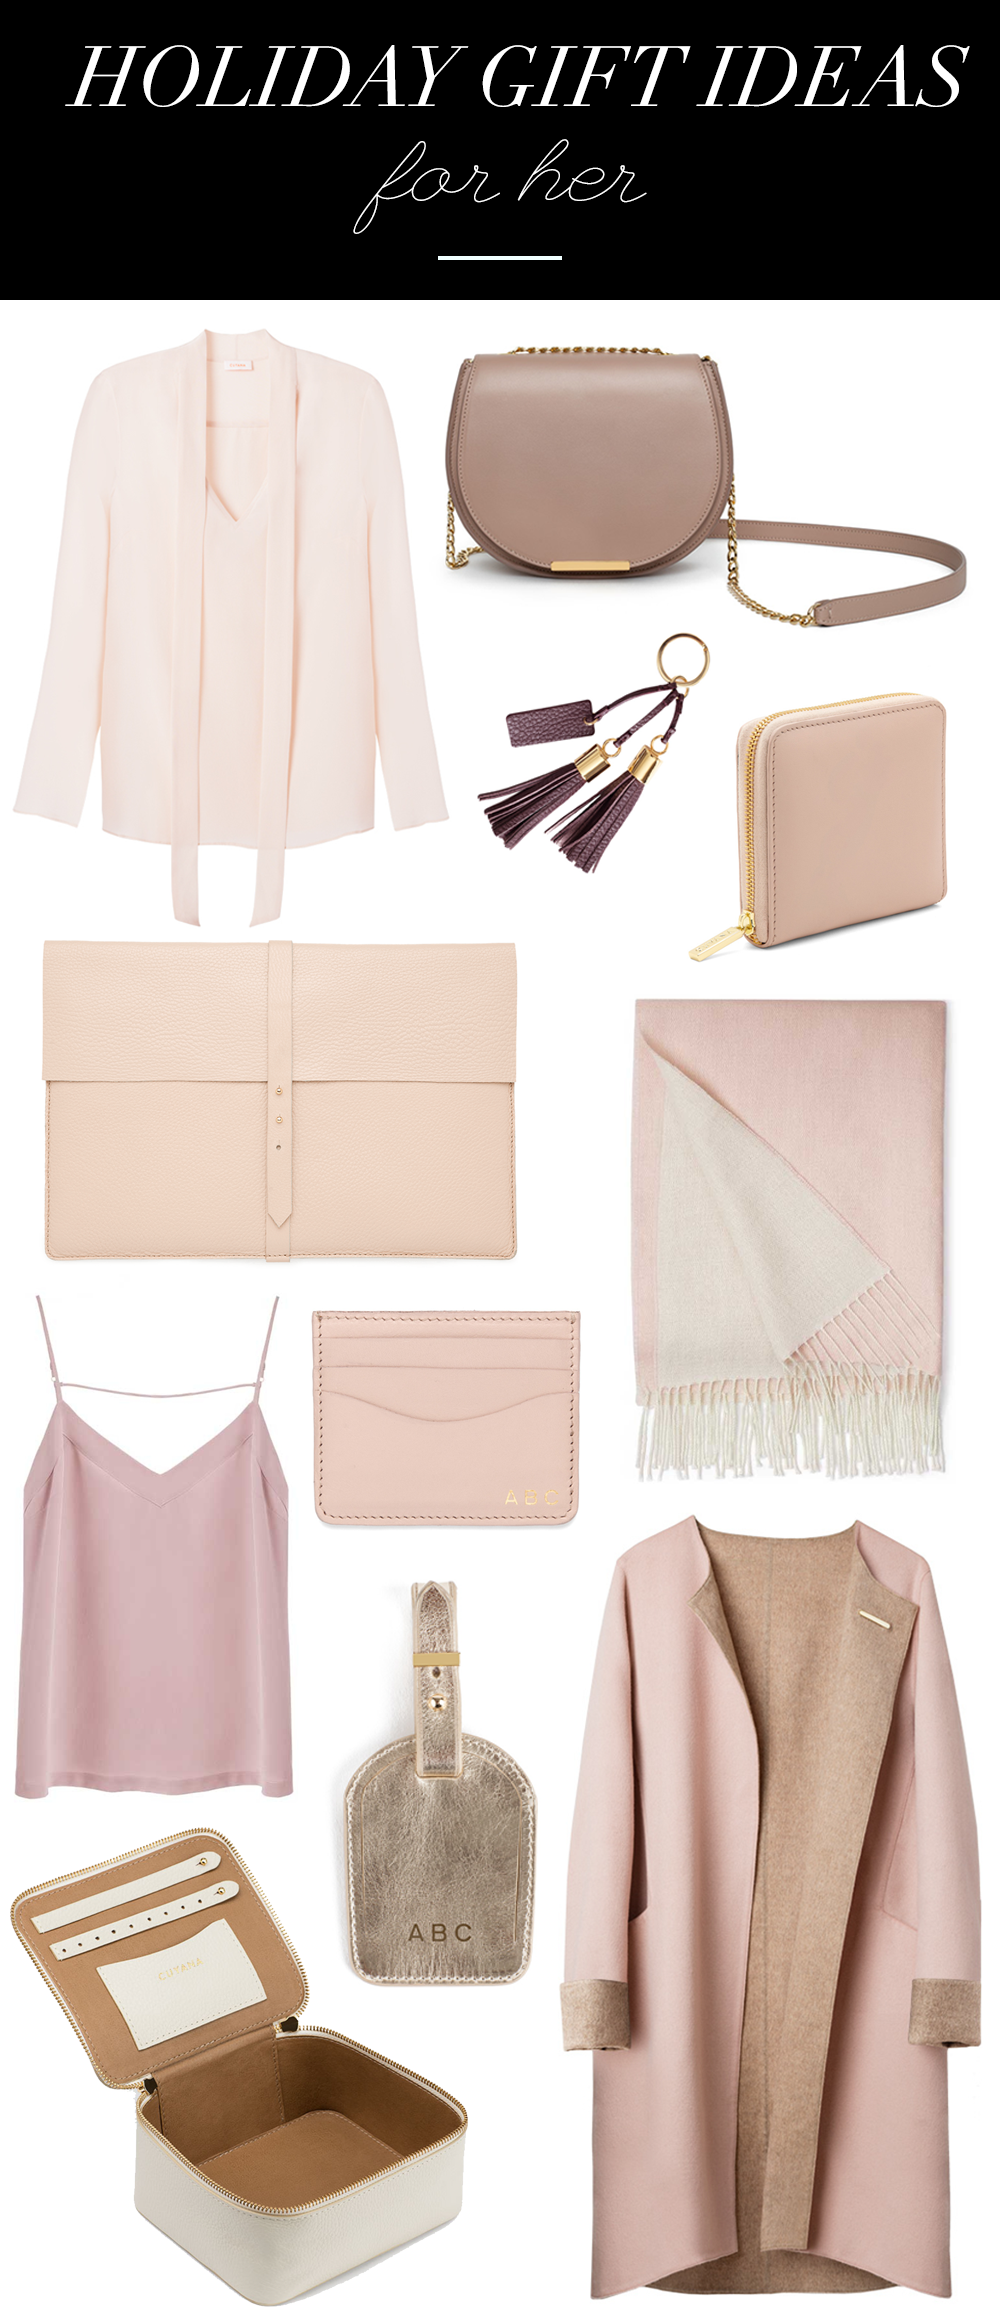 holiday gift ideas for her luxury gifts for her christmas gift guide blush fashion